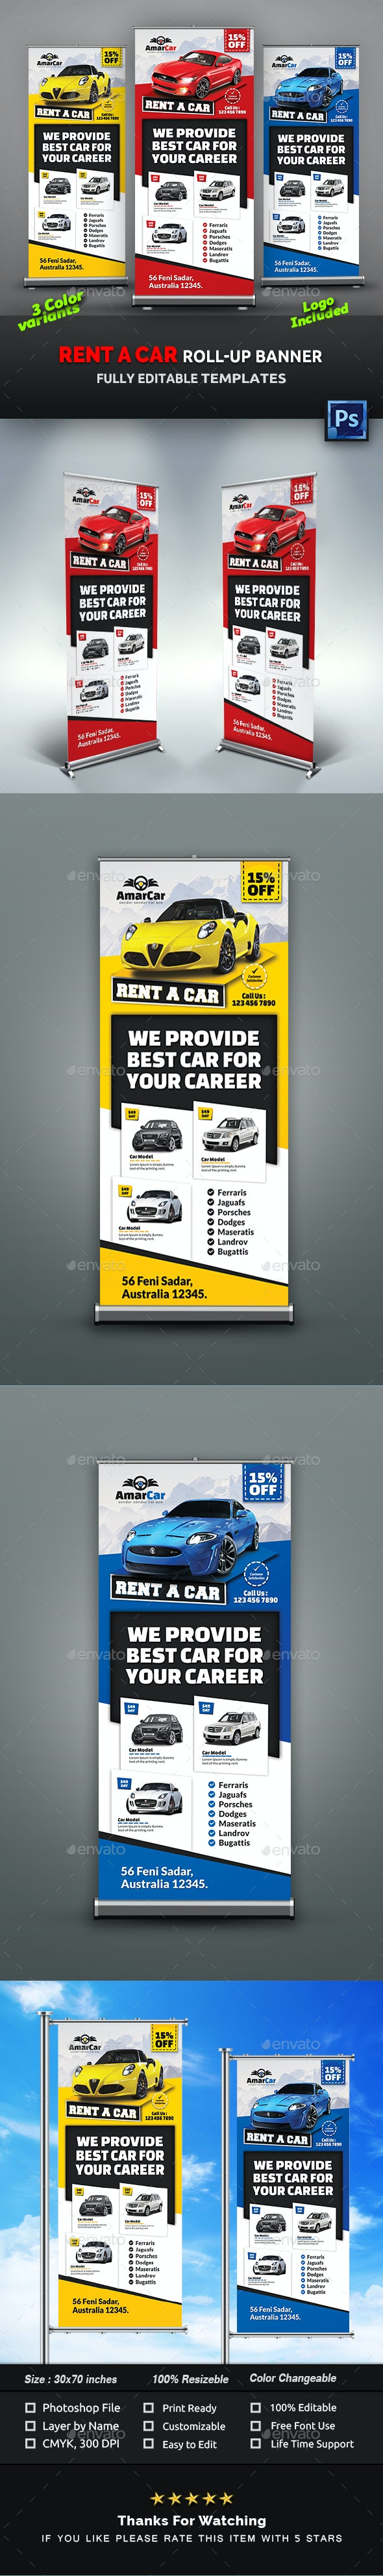 Rent a Car Roll-Up Banner Templates - Signage Print Templates